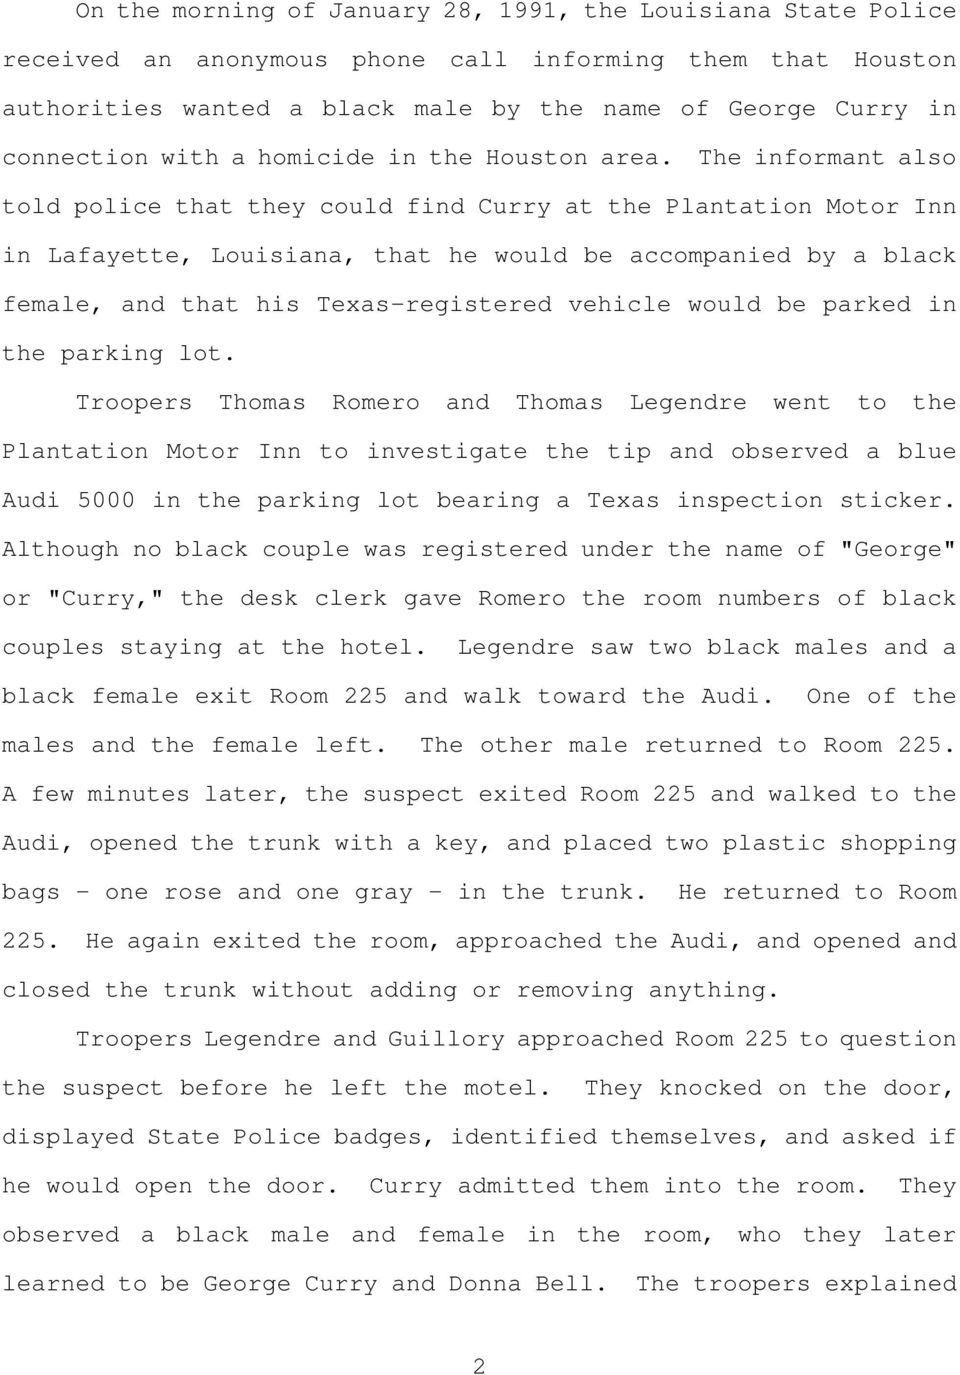 The informant also told police that they could find Curry at the Plantation Motor Inn in Lafayette, Louisiana, that he would be accompanied by a black female, and that his Texas-registered vehicle